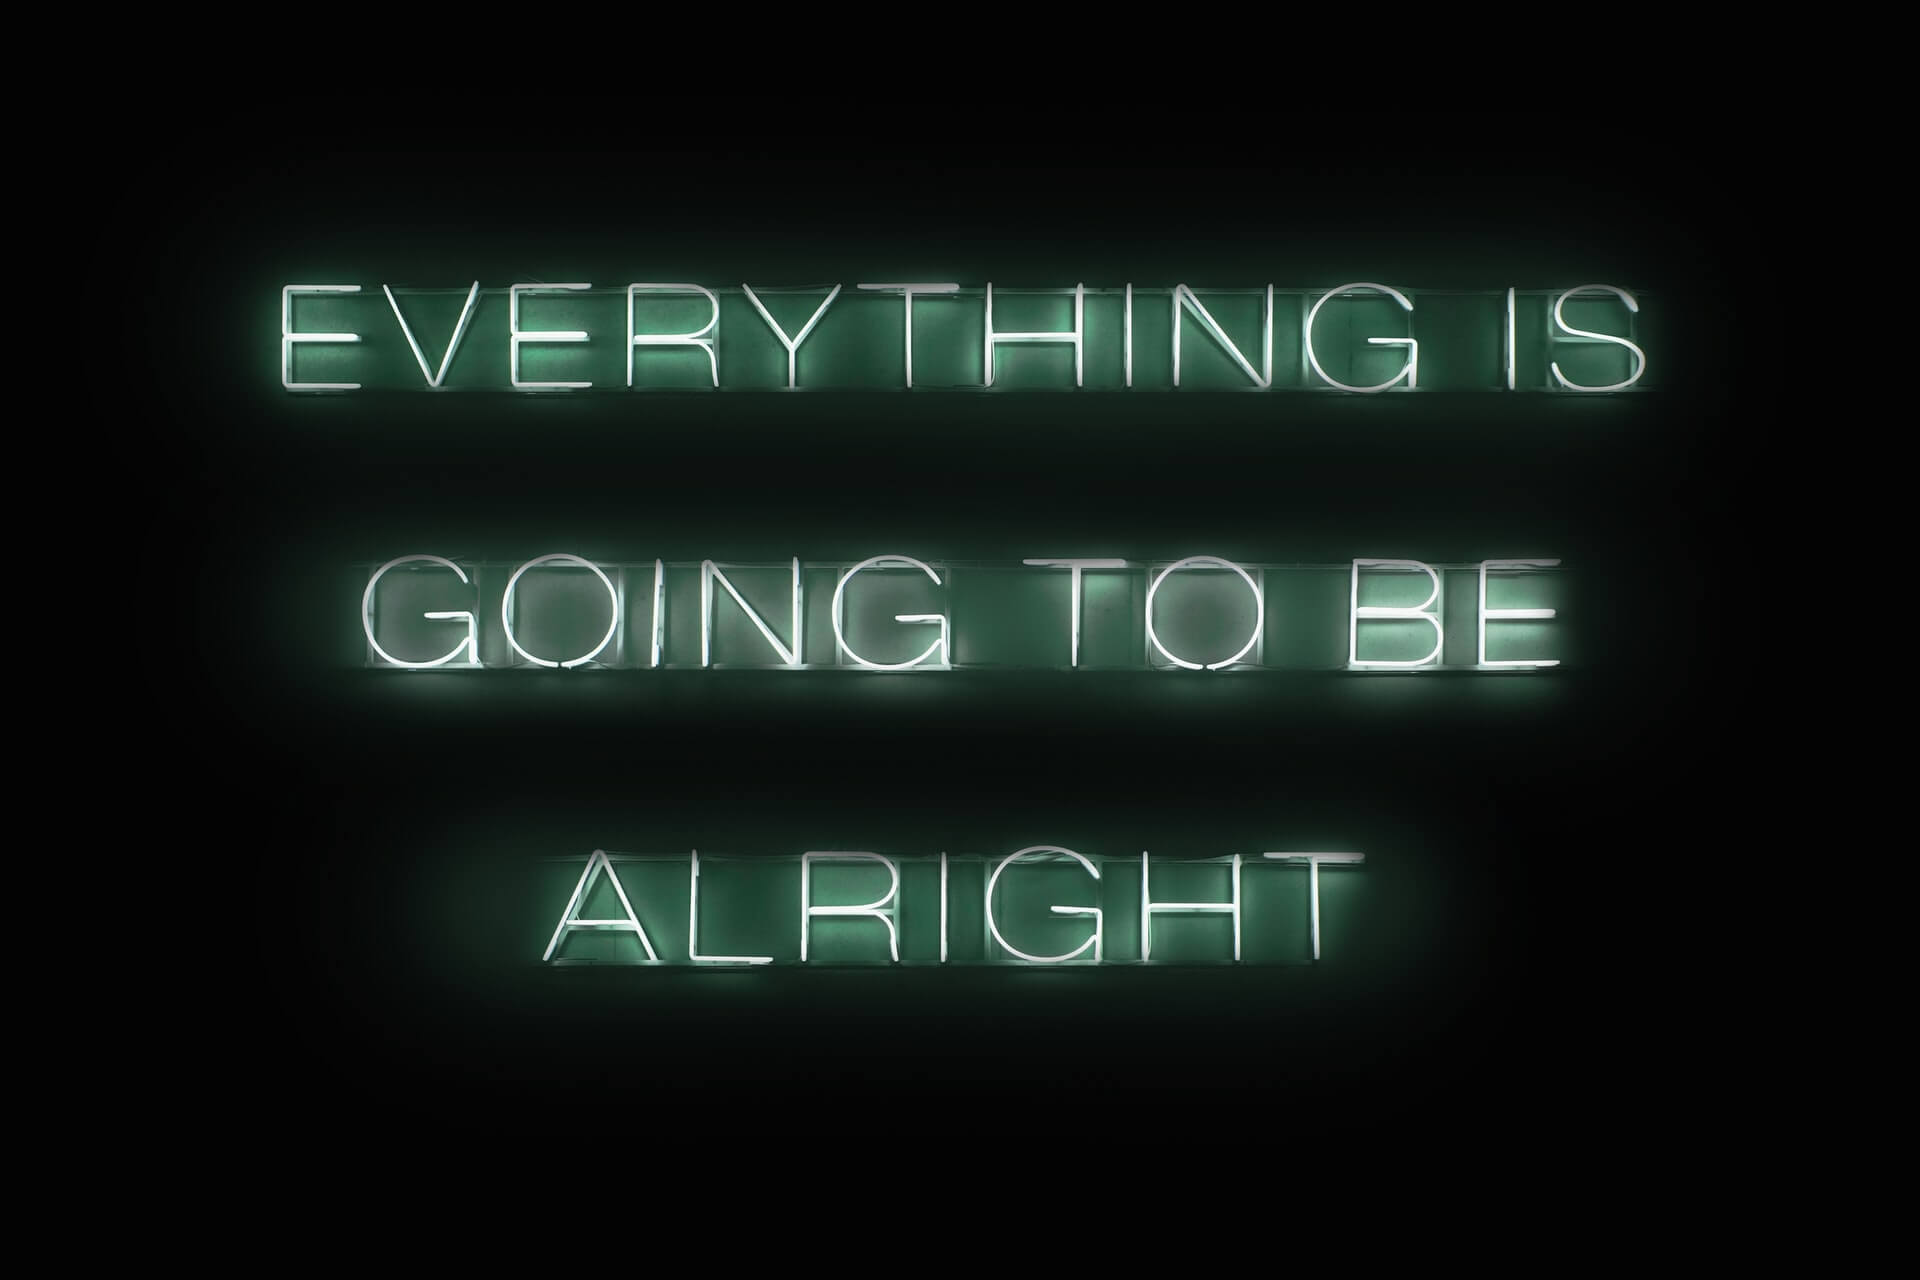 ignore-negativity-quotes-green-neon-sign-everything-alright